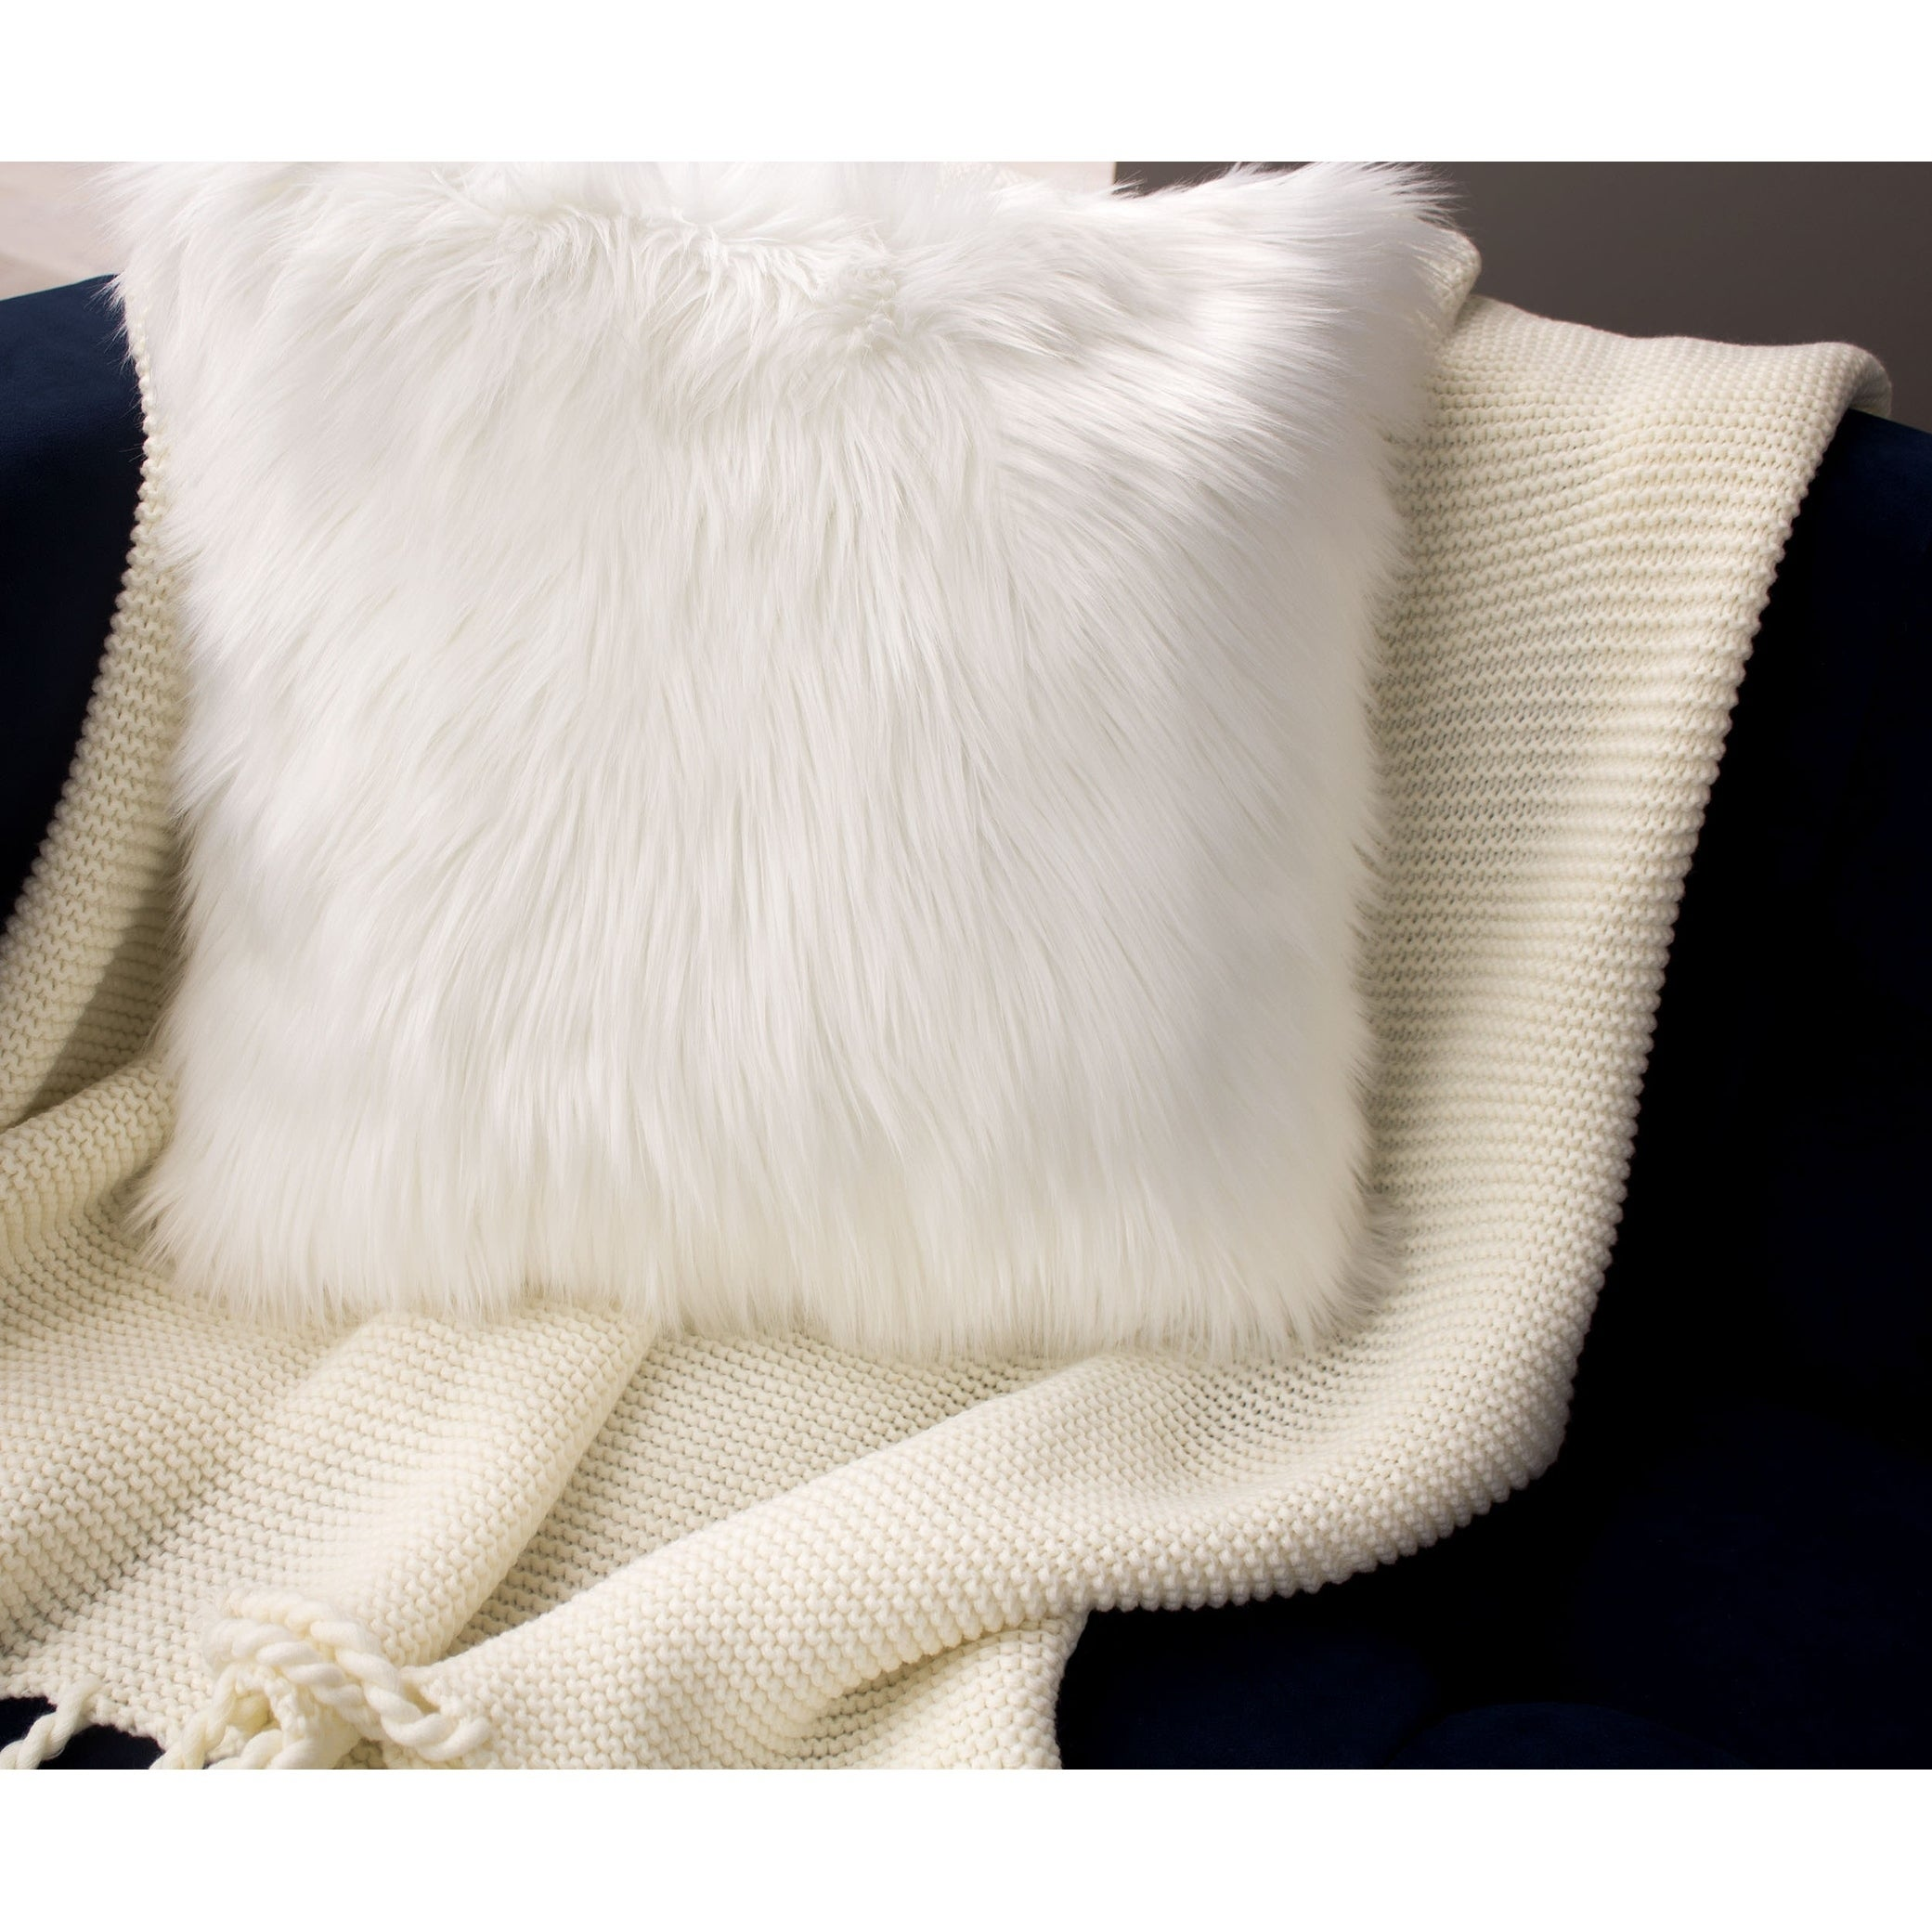 Jean Pierre Faux Fur 2 Piece Decorative Pillow Set